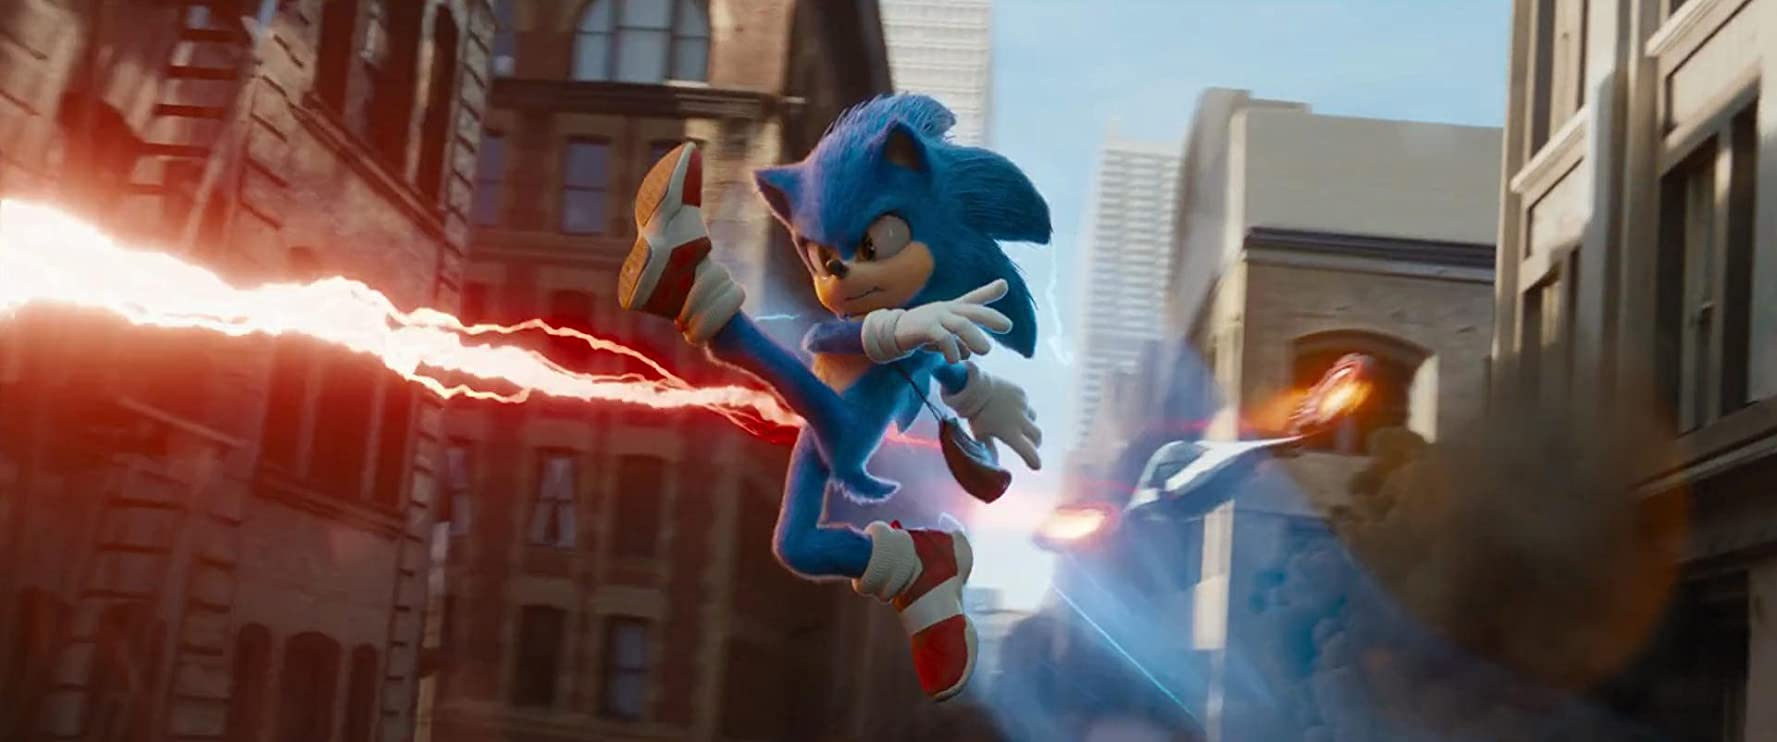 Sonic The Hedgehog Screenwriters Josh Miller Patrick Casey On